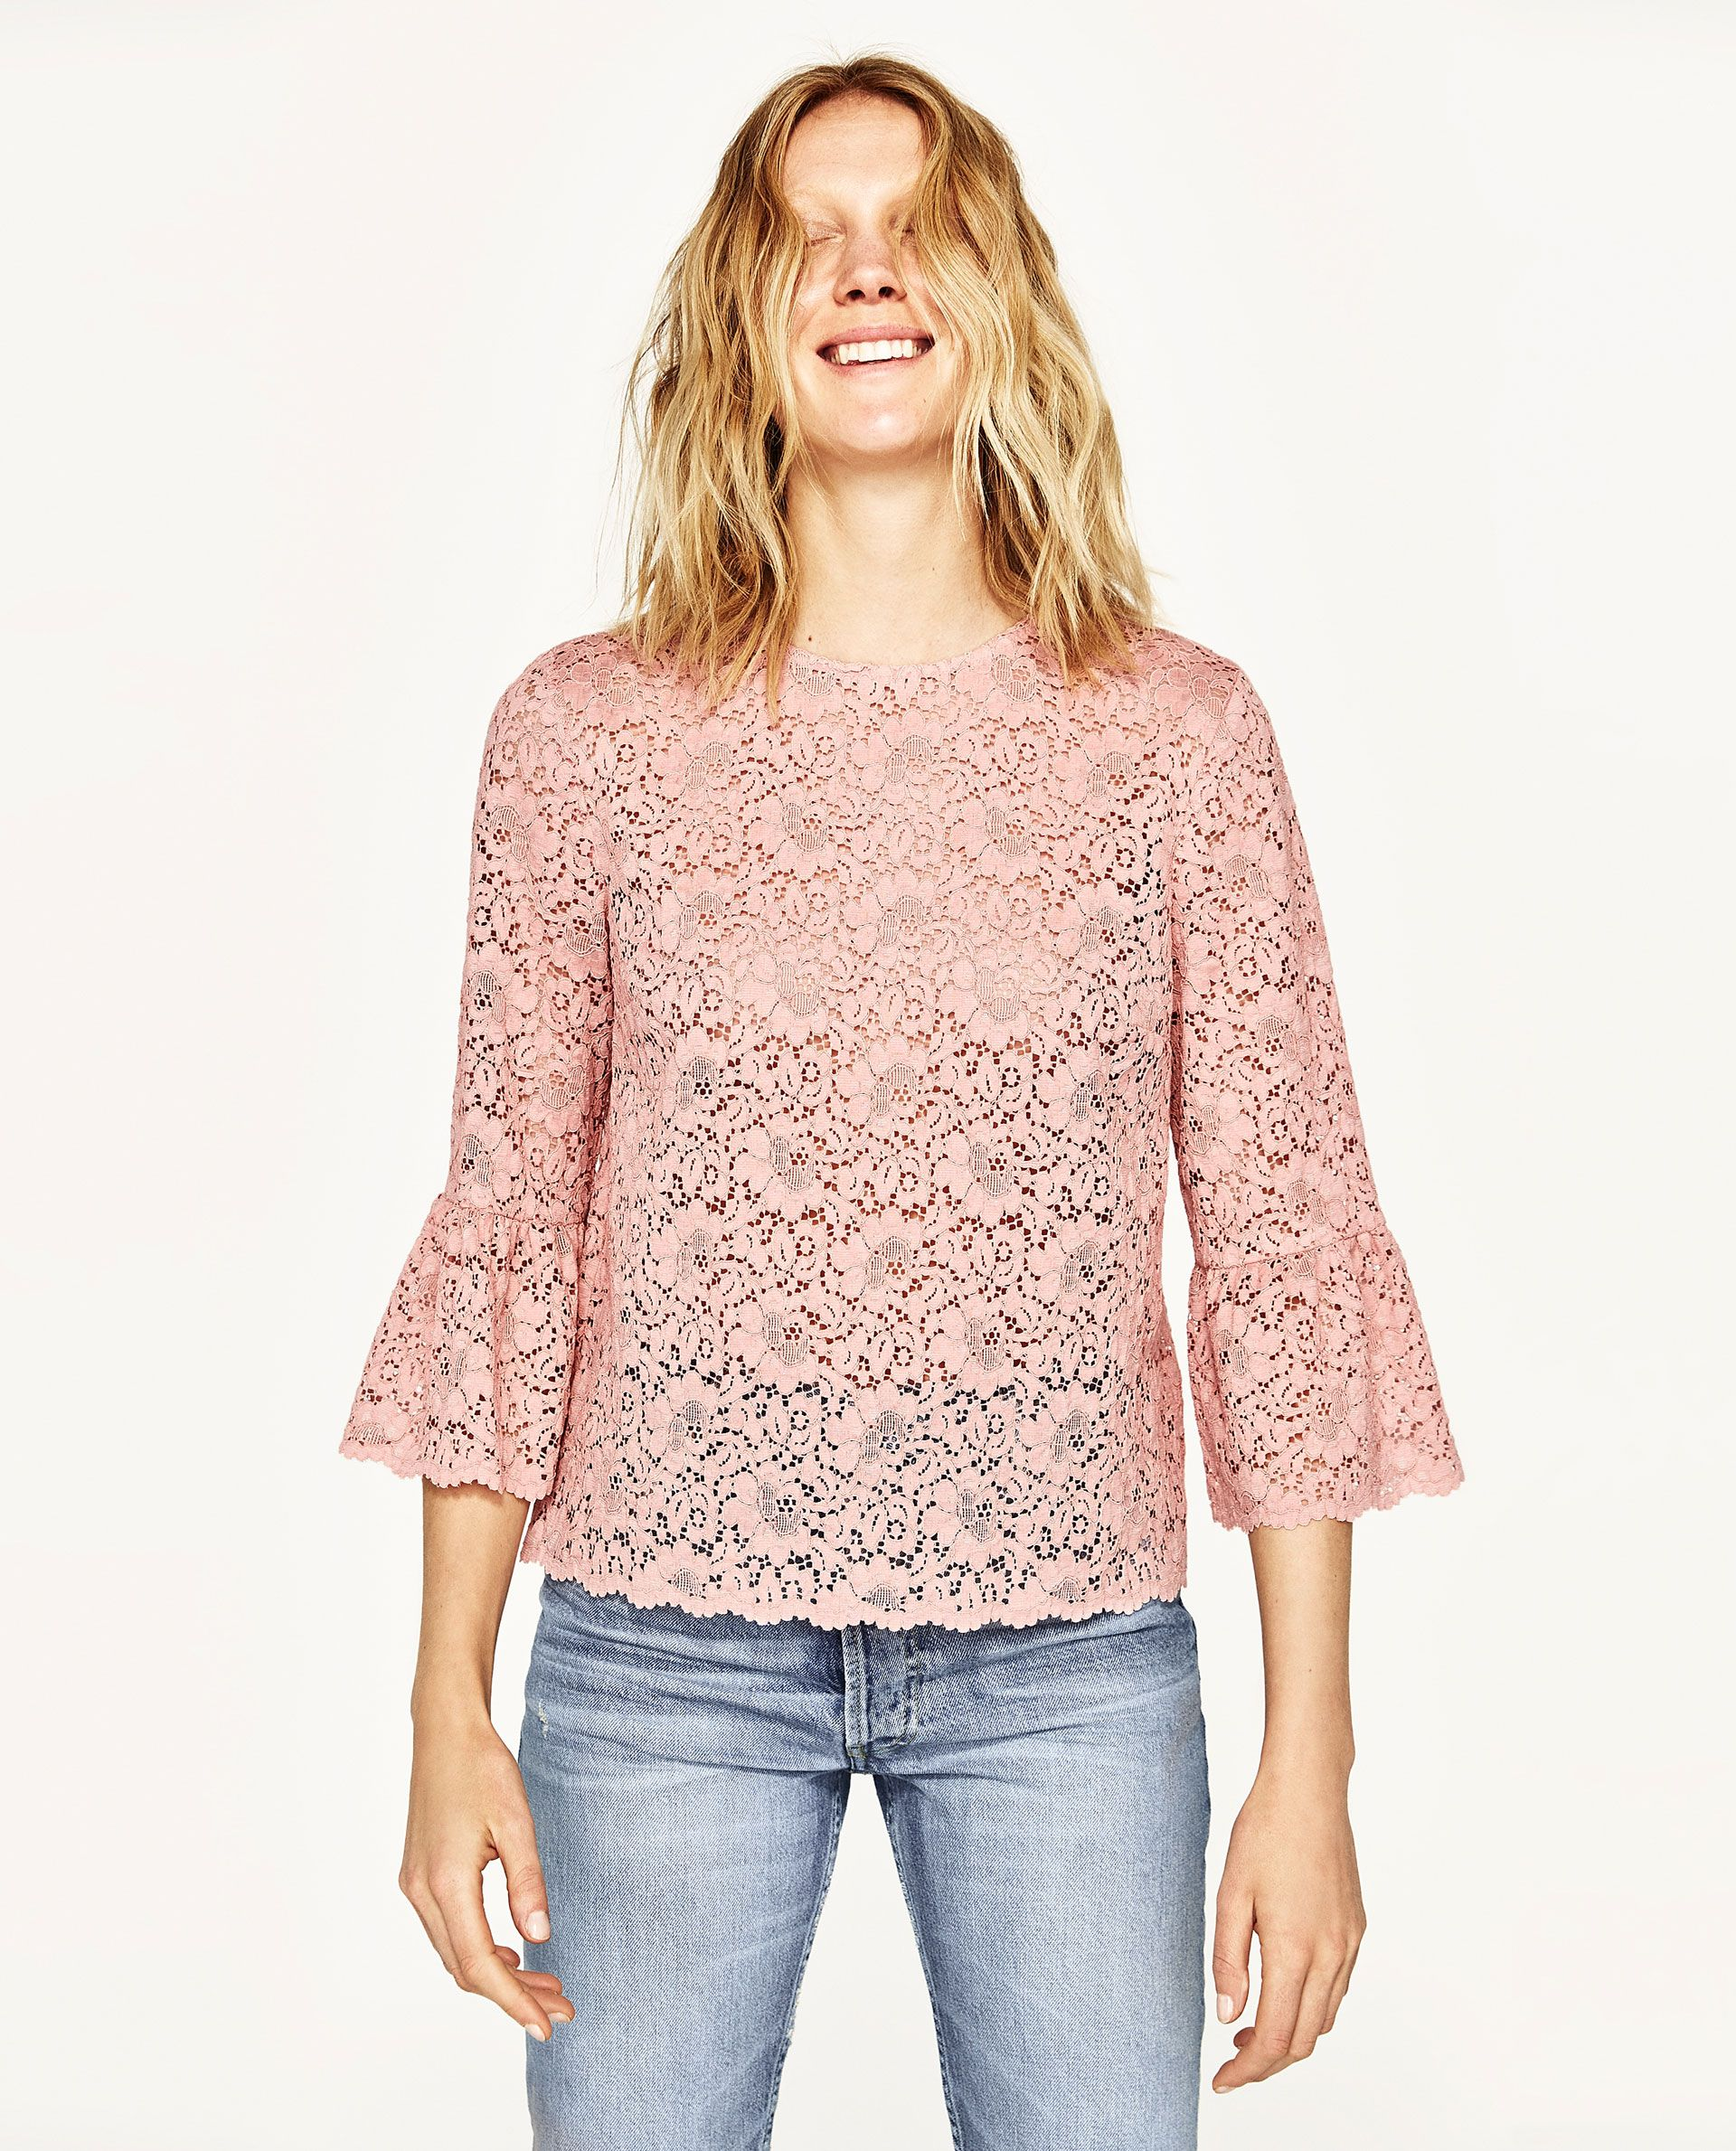 cb4e1aa51cdc3 ZARA PINK LACE TOP WITH FRILLED SLEEVES